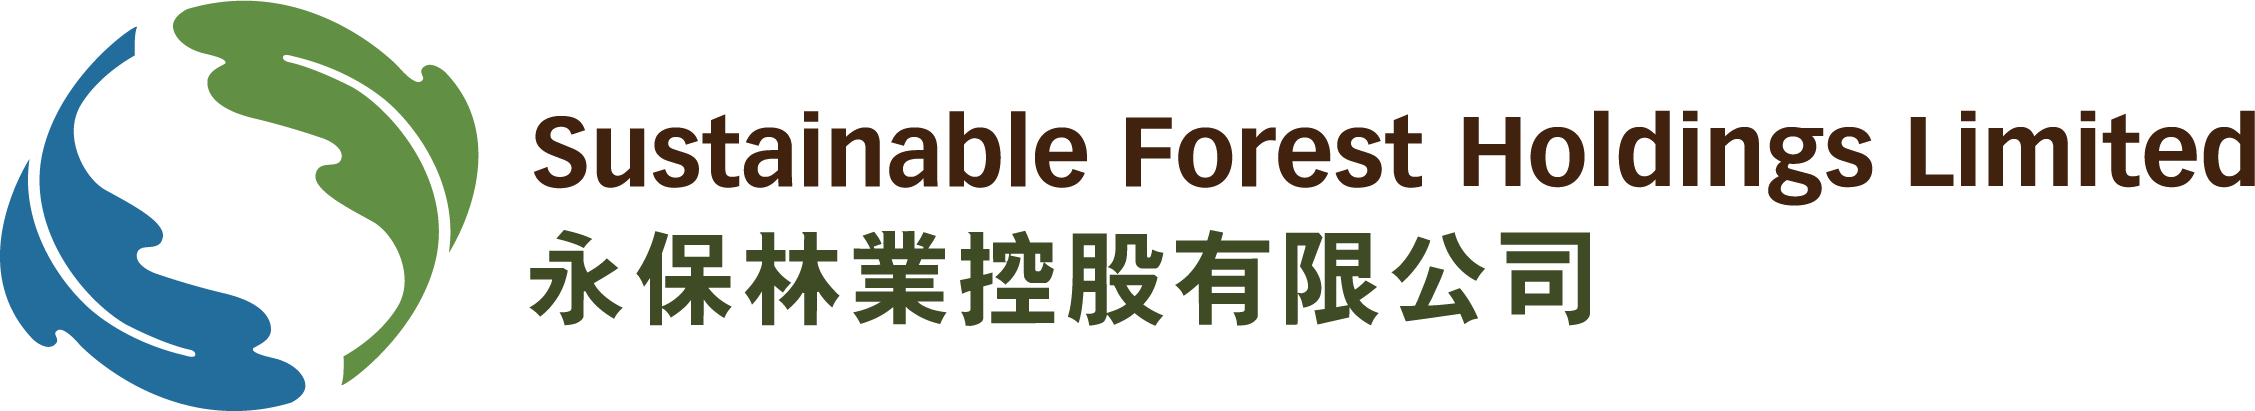 Sustainable Forest Holdings Limited